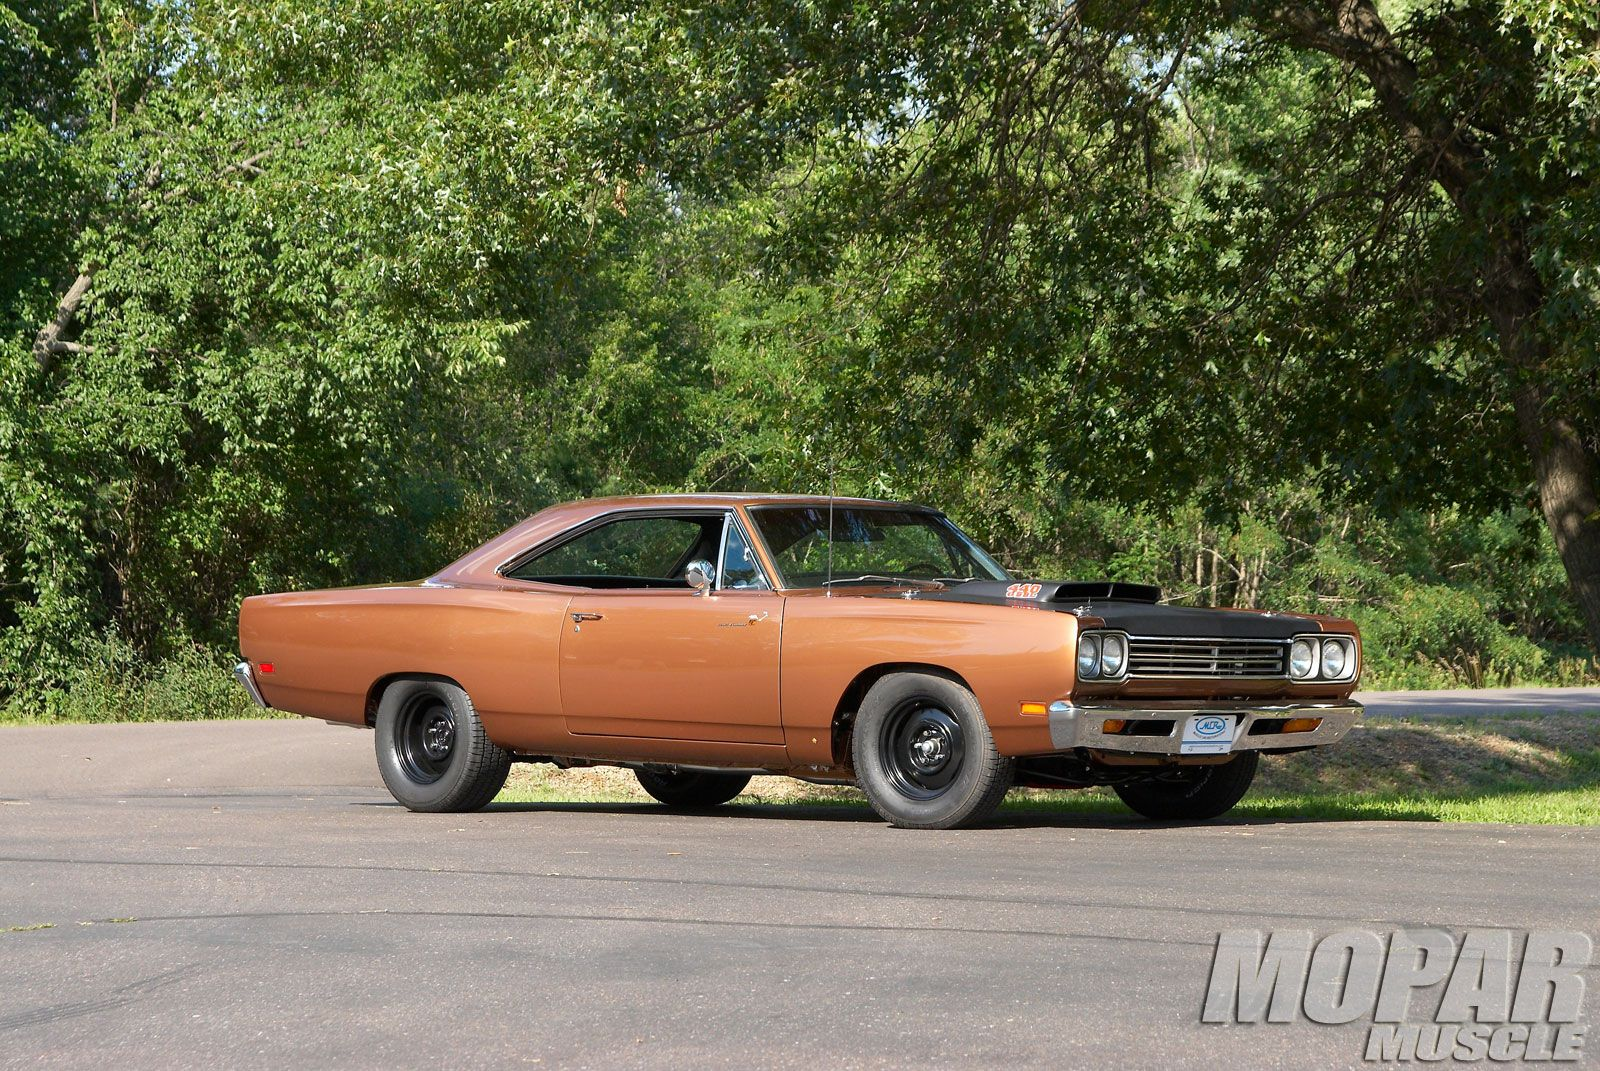 1969 roadrunner images 1969 plymouth road runner exclusive photos photo gallery